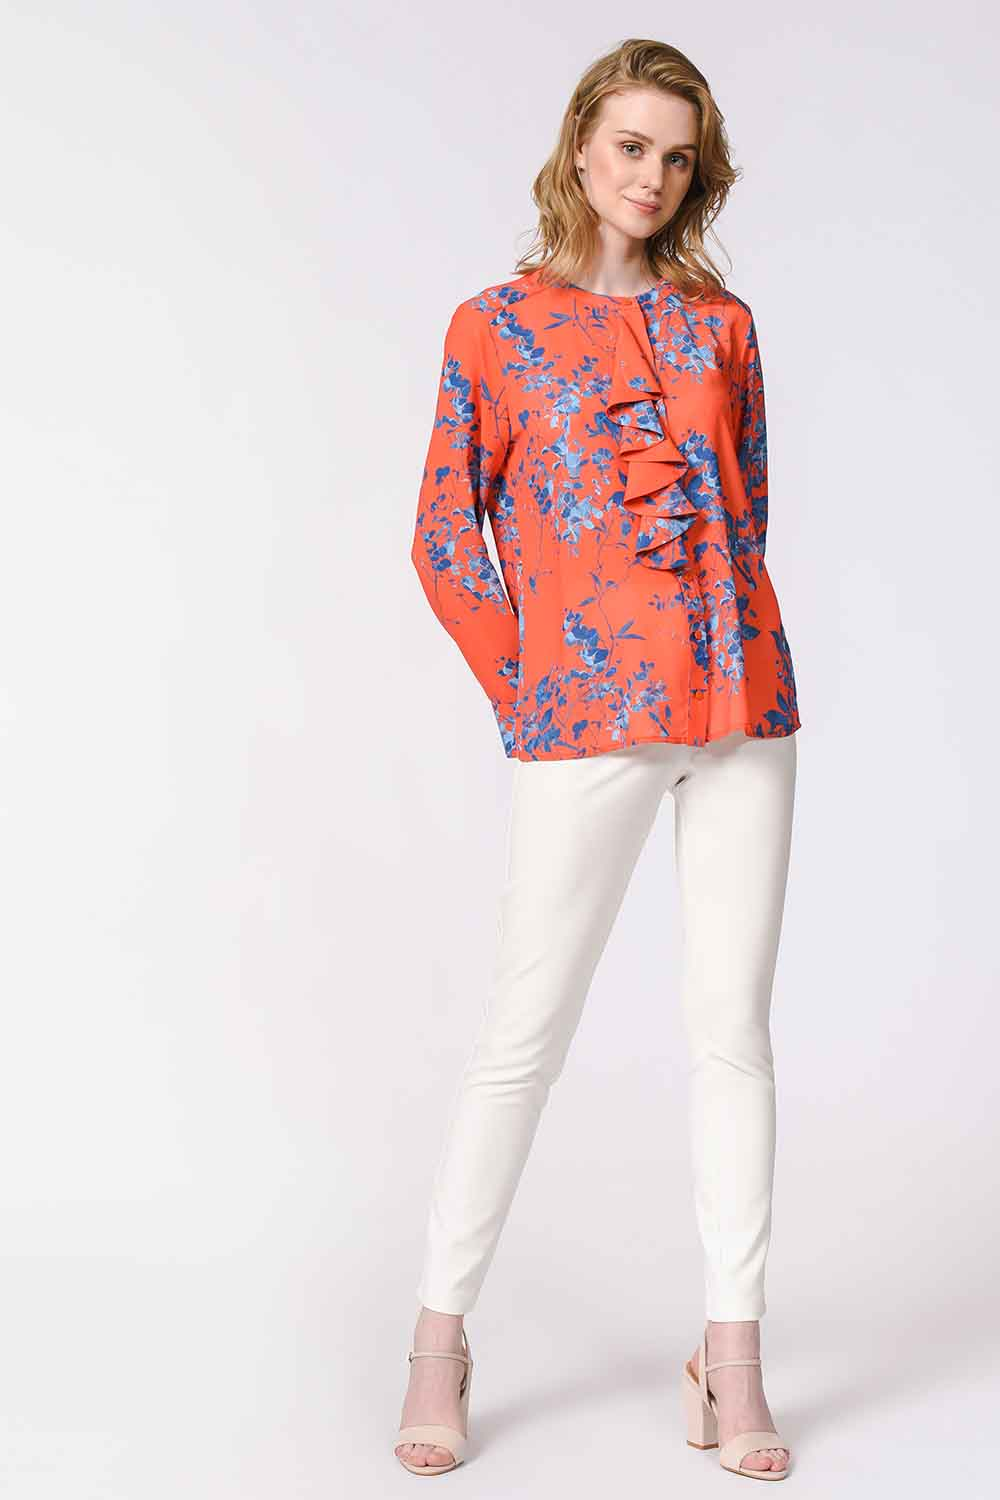 MIZALLE Flower Patterned Frilly Blouse (Orange-Red) (1)